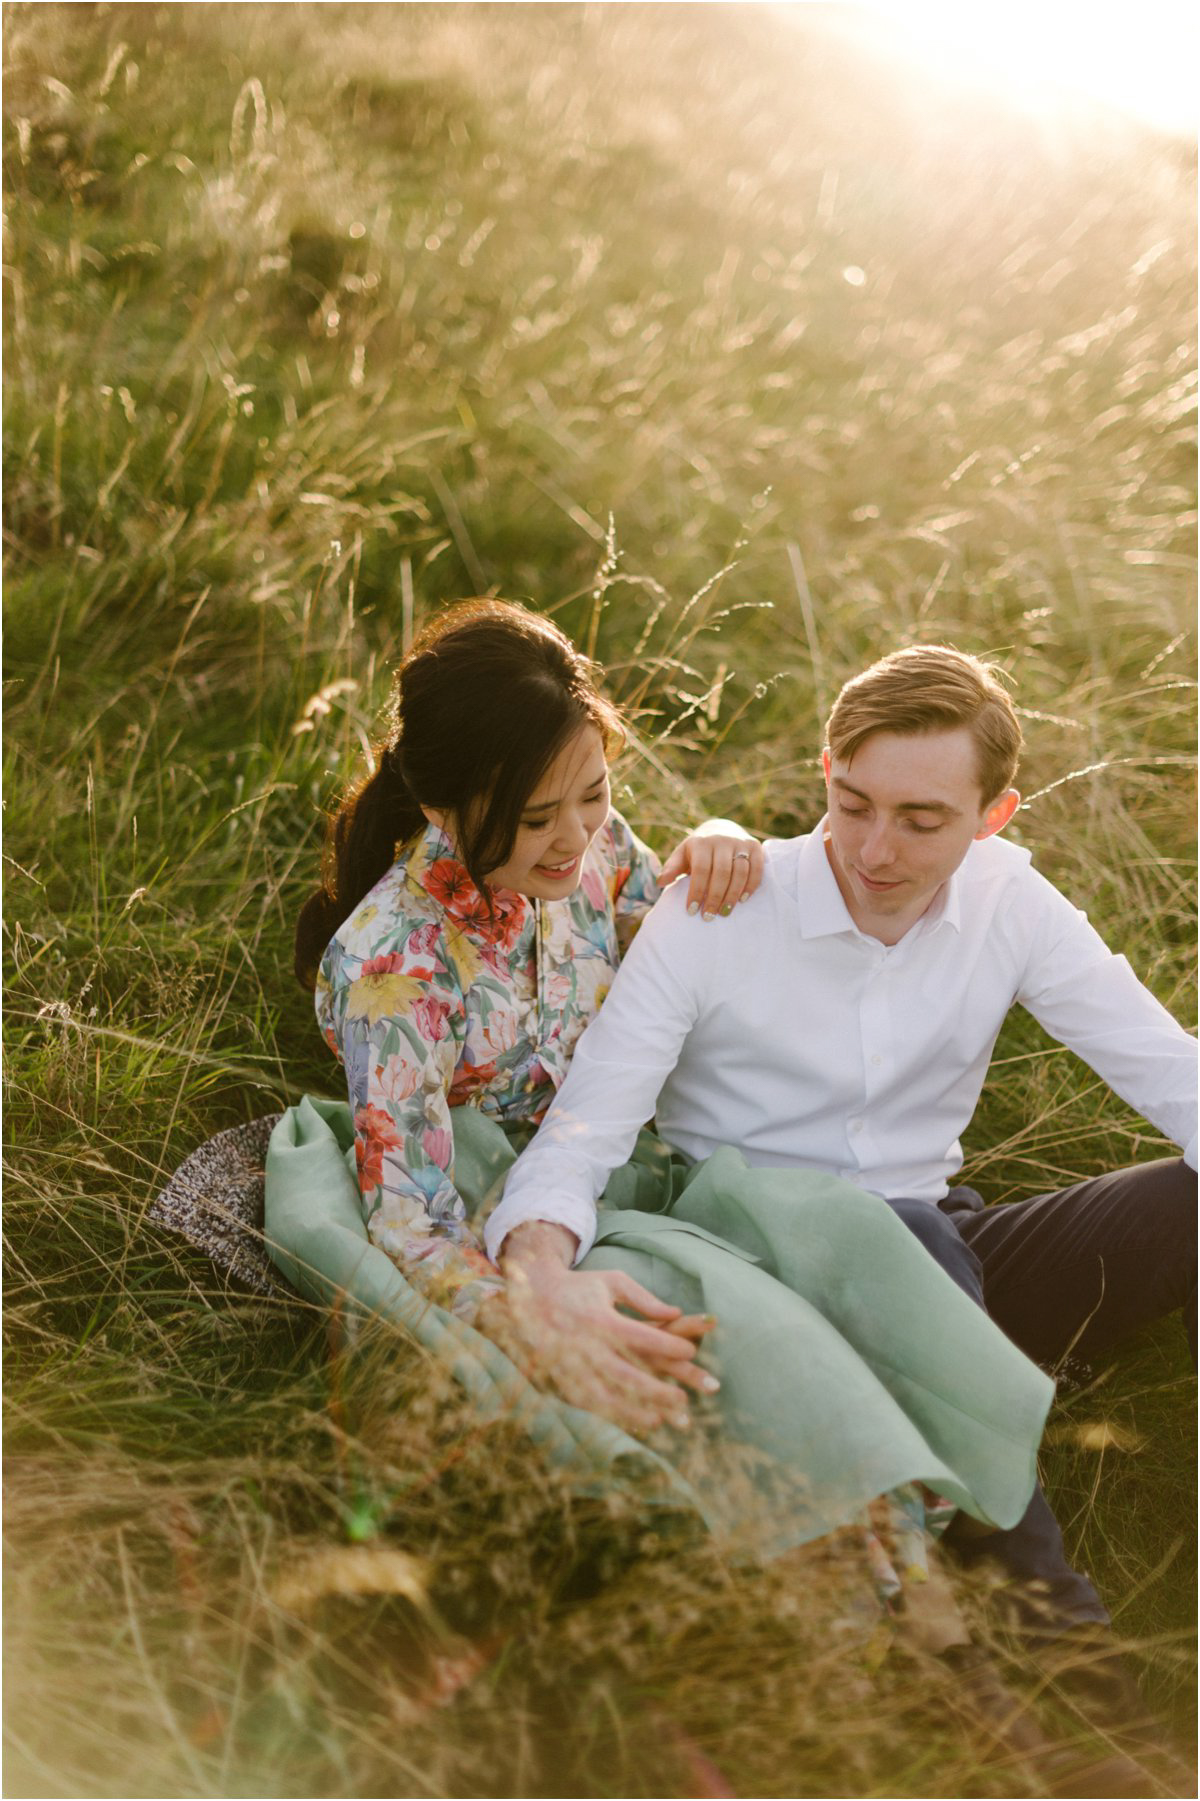 Korean girl and British boy sitting in tall grass holding hands in a sunset